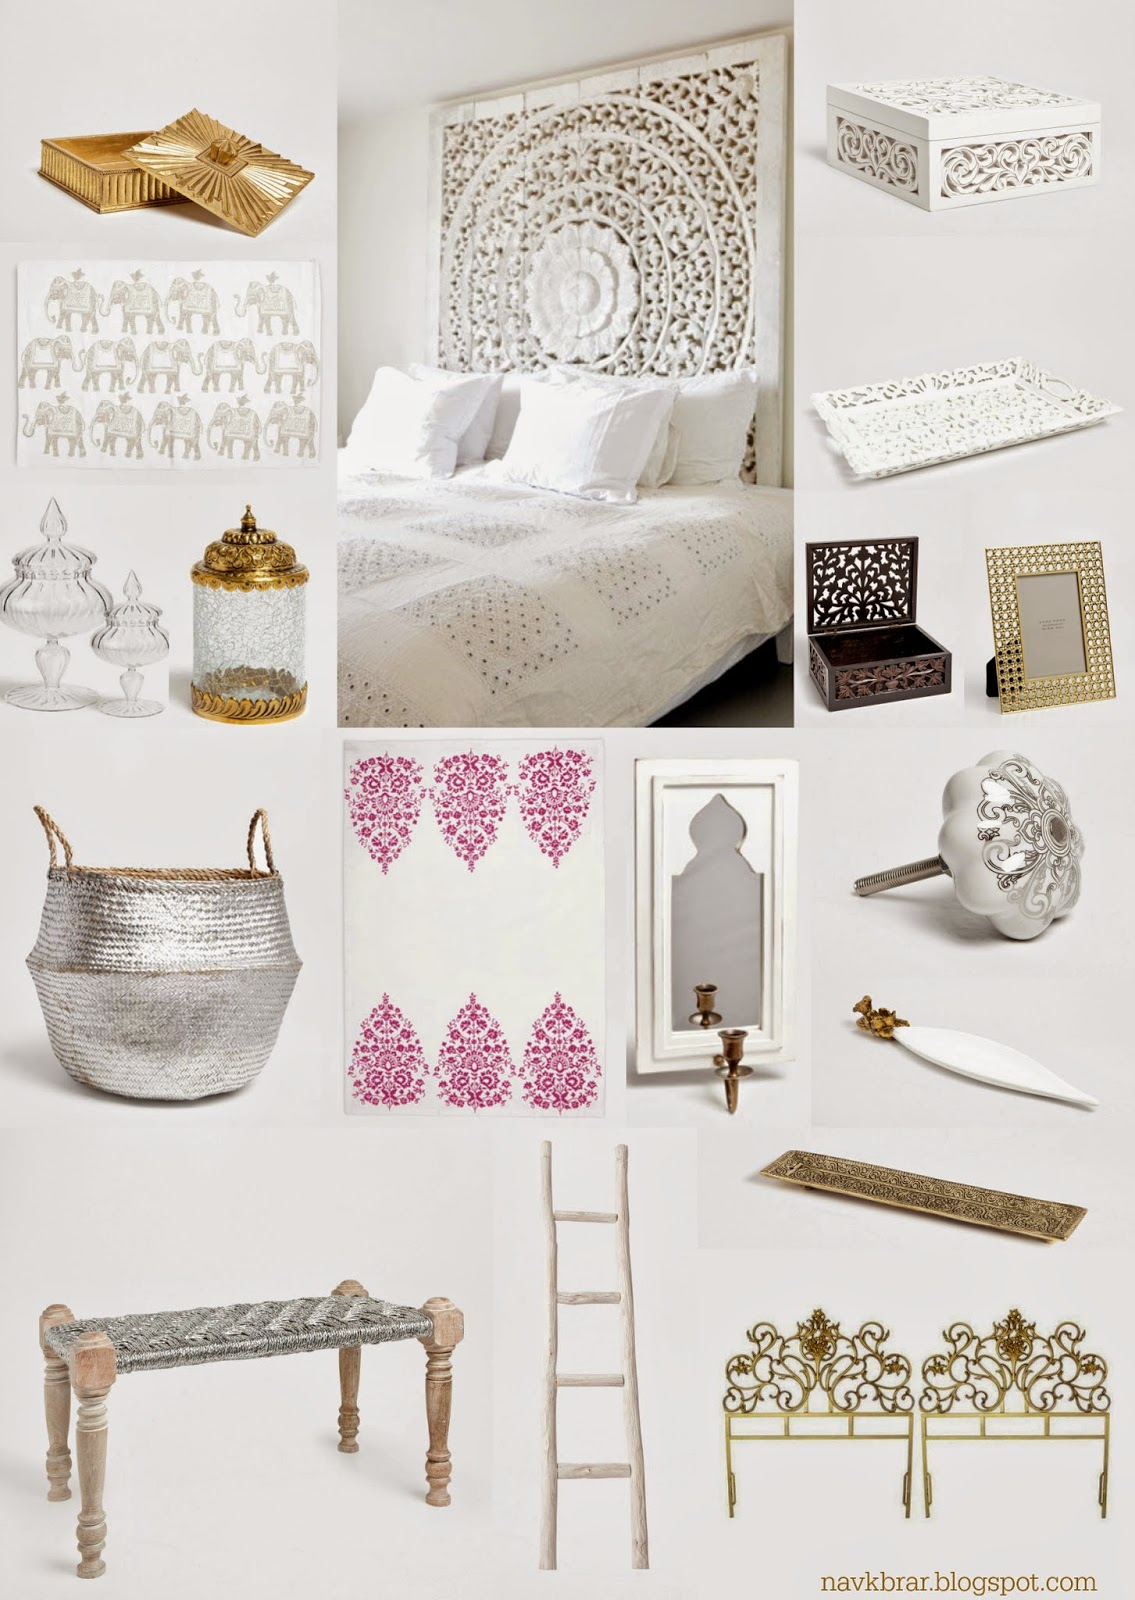 Zara home decor: White Bedroom, Indian inspired white and gold decor with wood carved trays